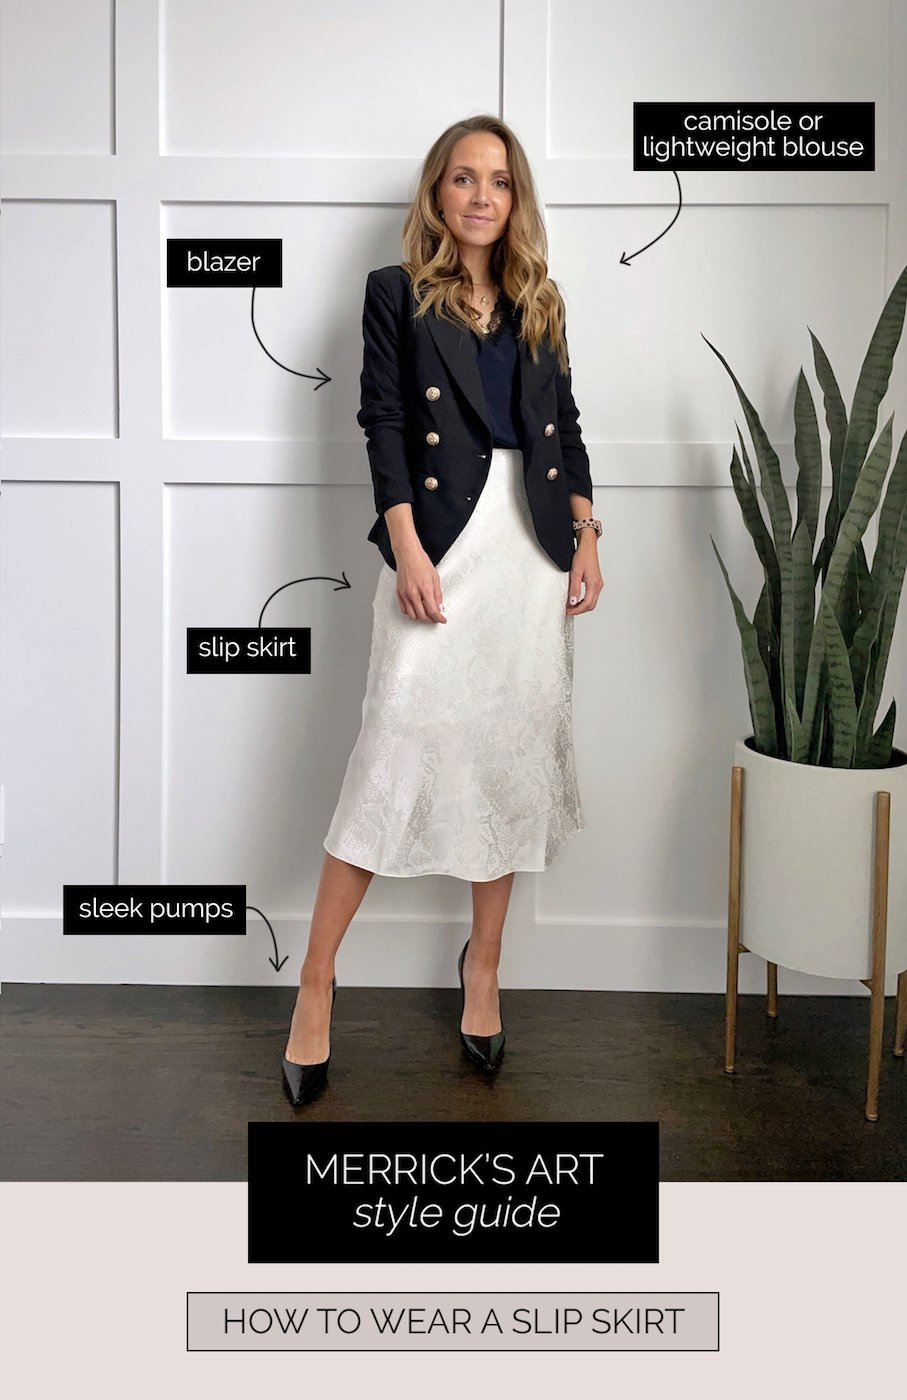 How to wear a slip skirt